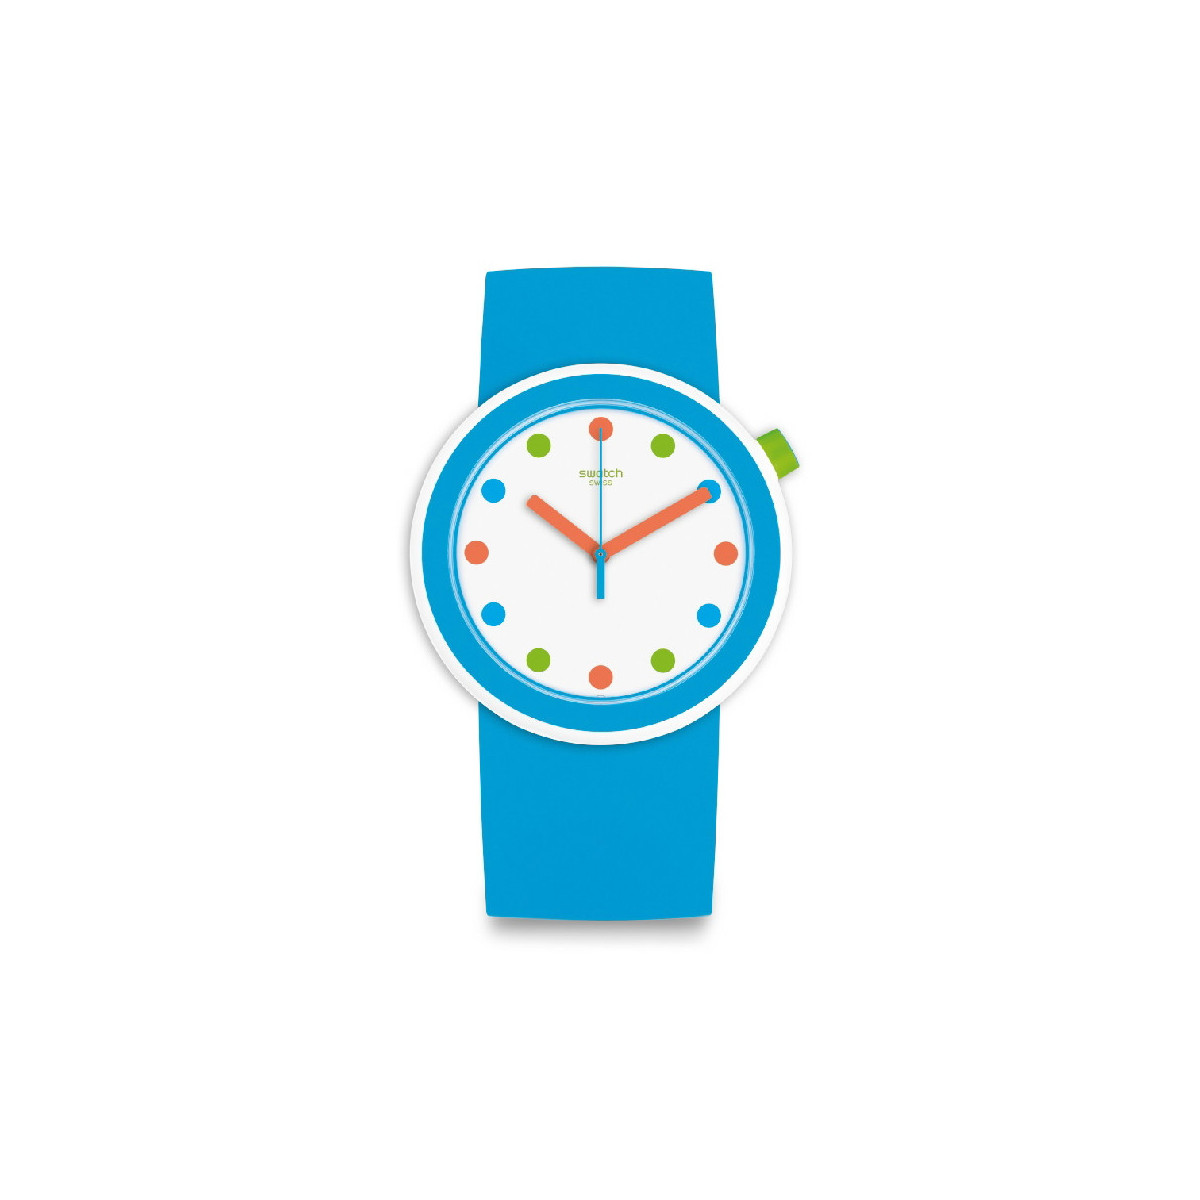 Swatch_PNW102_Popingpop_outlet_50%